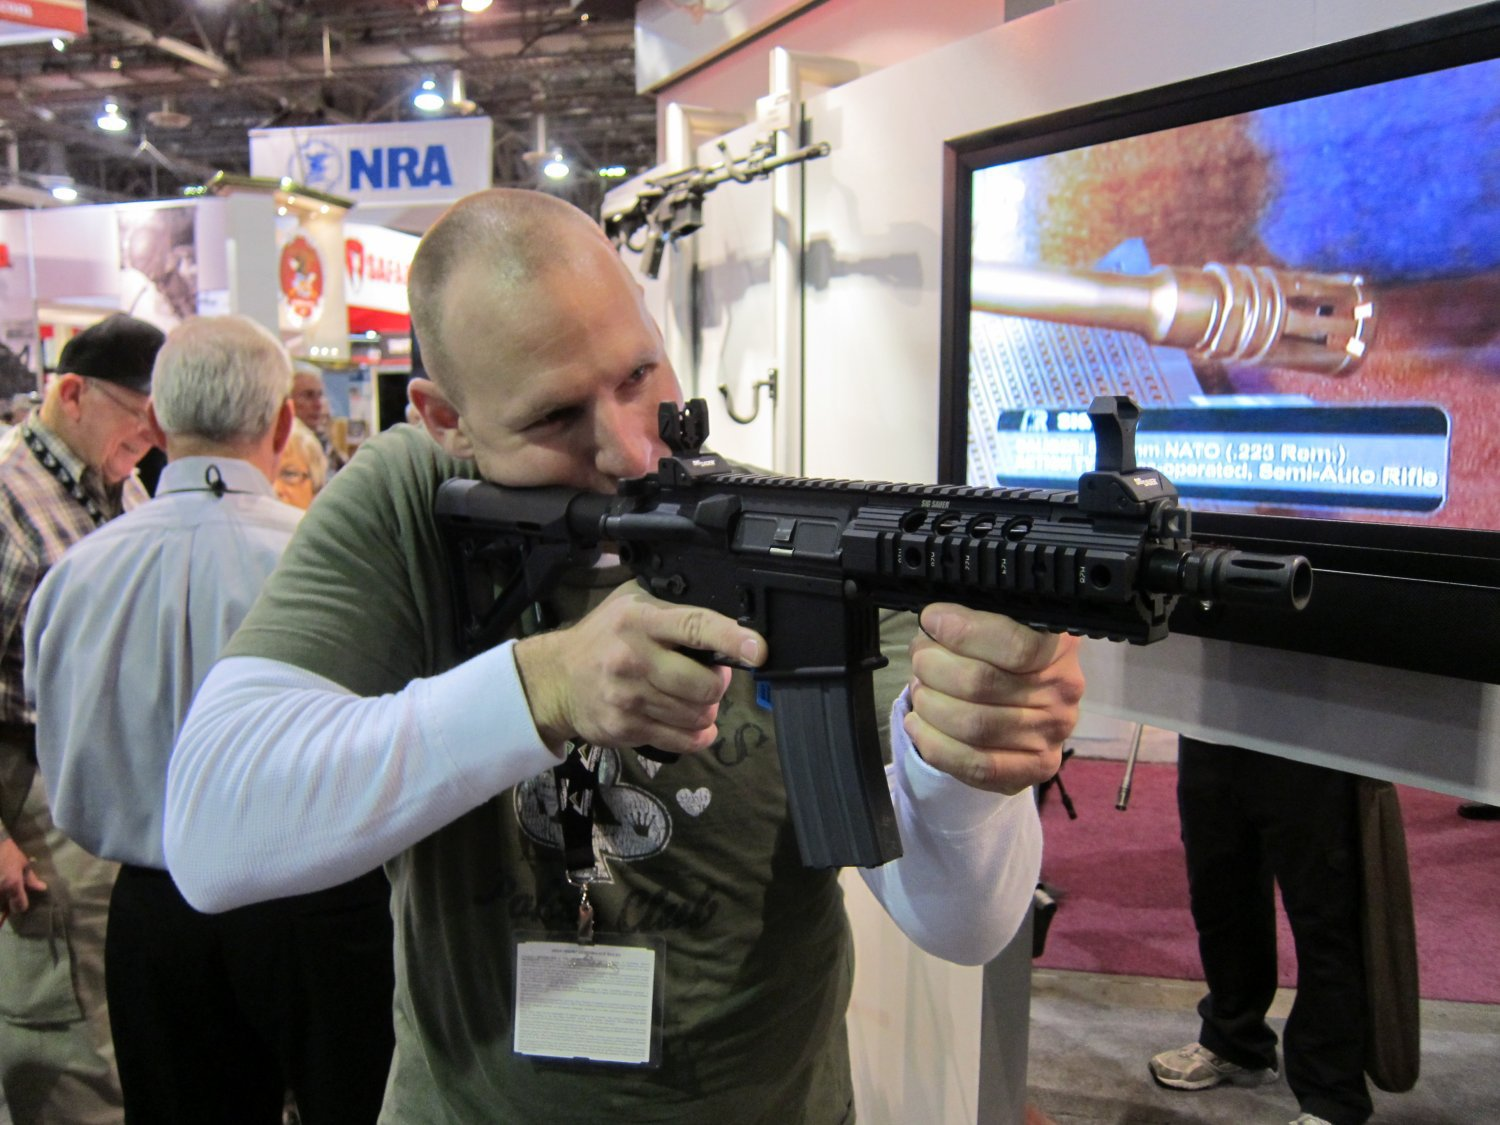 SHOT Show 2010 SIG SAUER SIG516 Gas Piston Op Rod Carbine SBR Series 1 <!  :en  >SIG Sauer SIG516 (5.56mm) and SIG716 (7.62mm) Short Stroke Gas Piston/Op Rod System Tactical AR Rifle/Carbine/SBR Series at SHOT Show 2010 (Photos!) <!  :  >